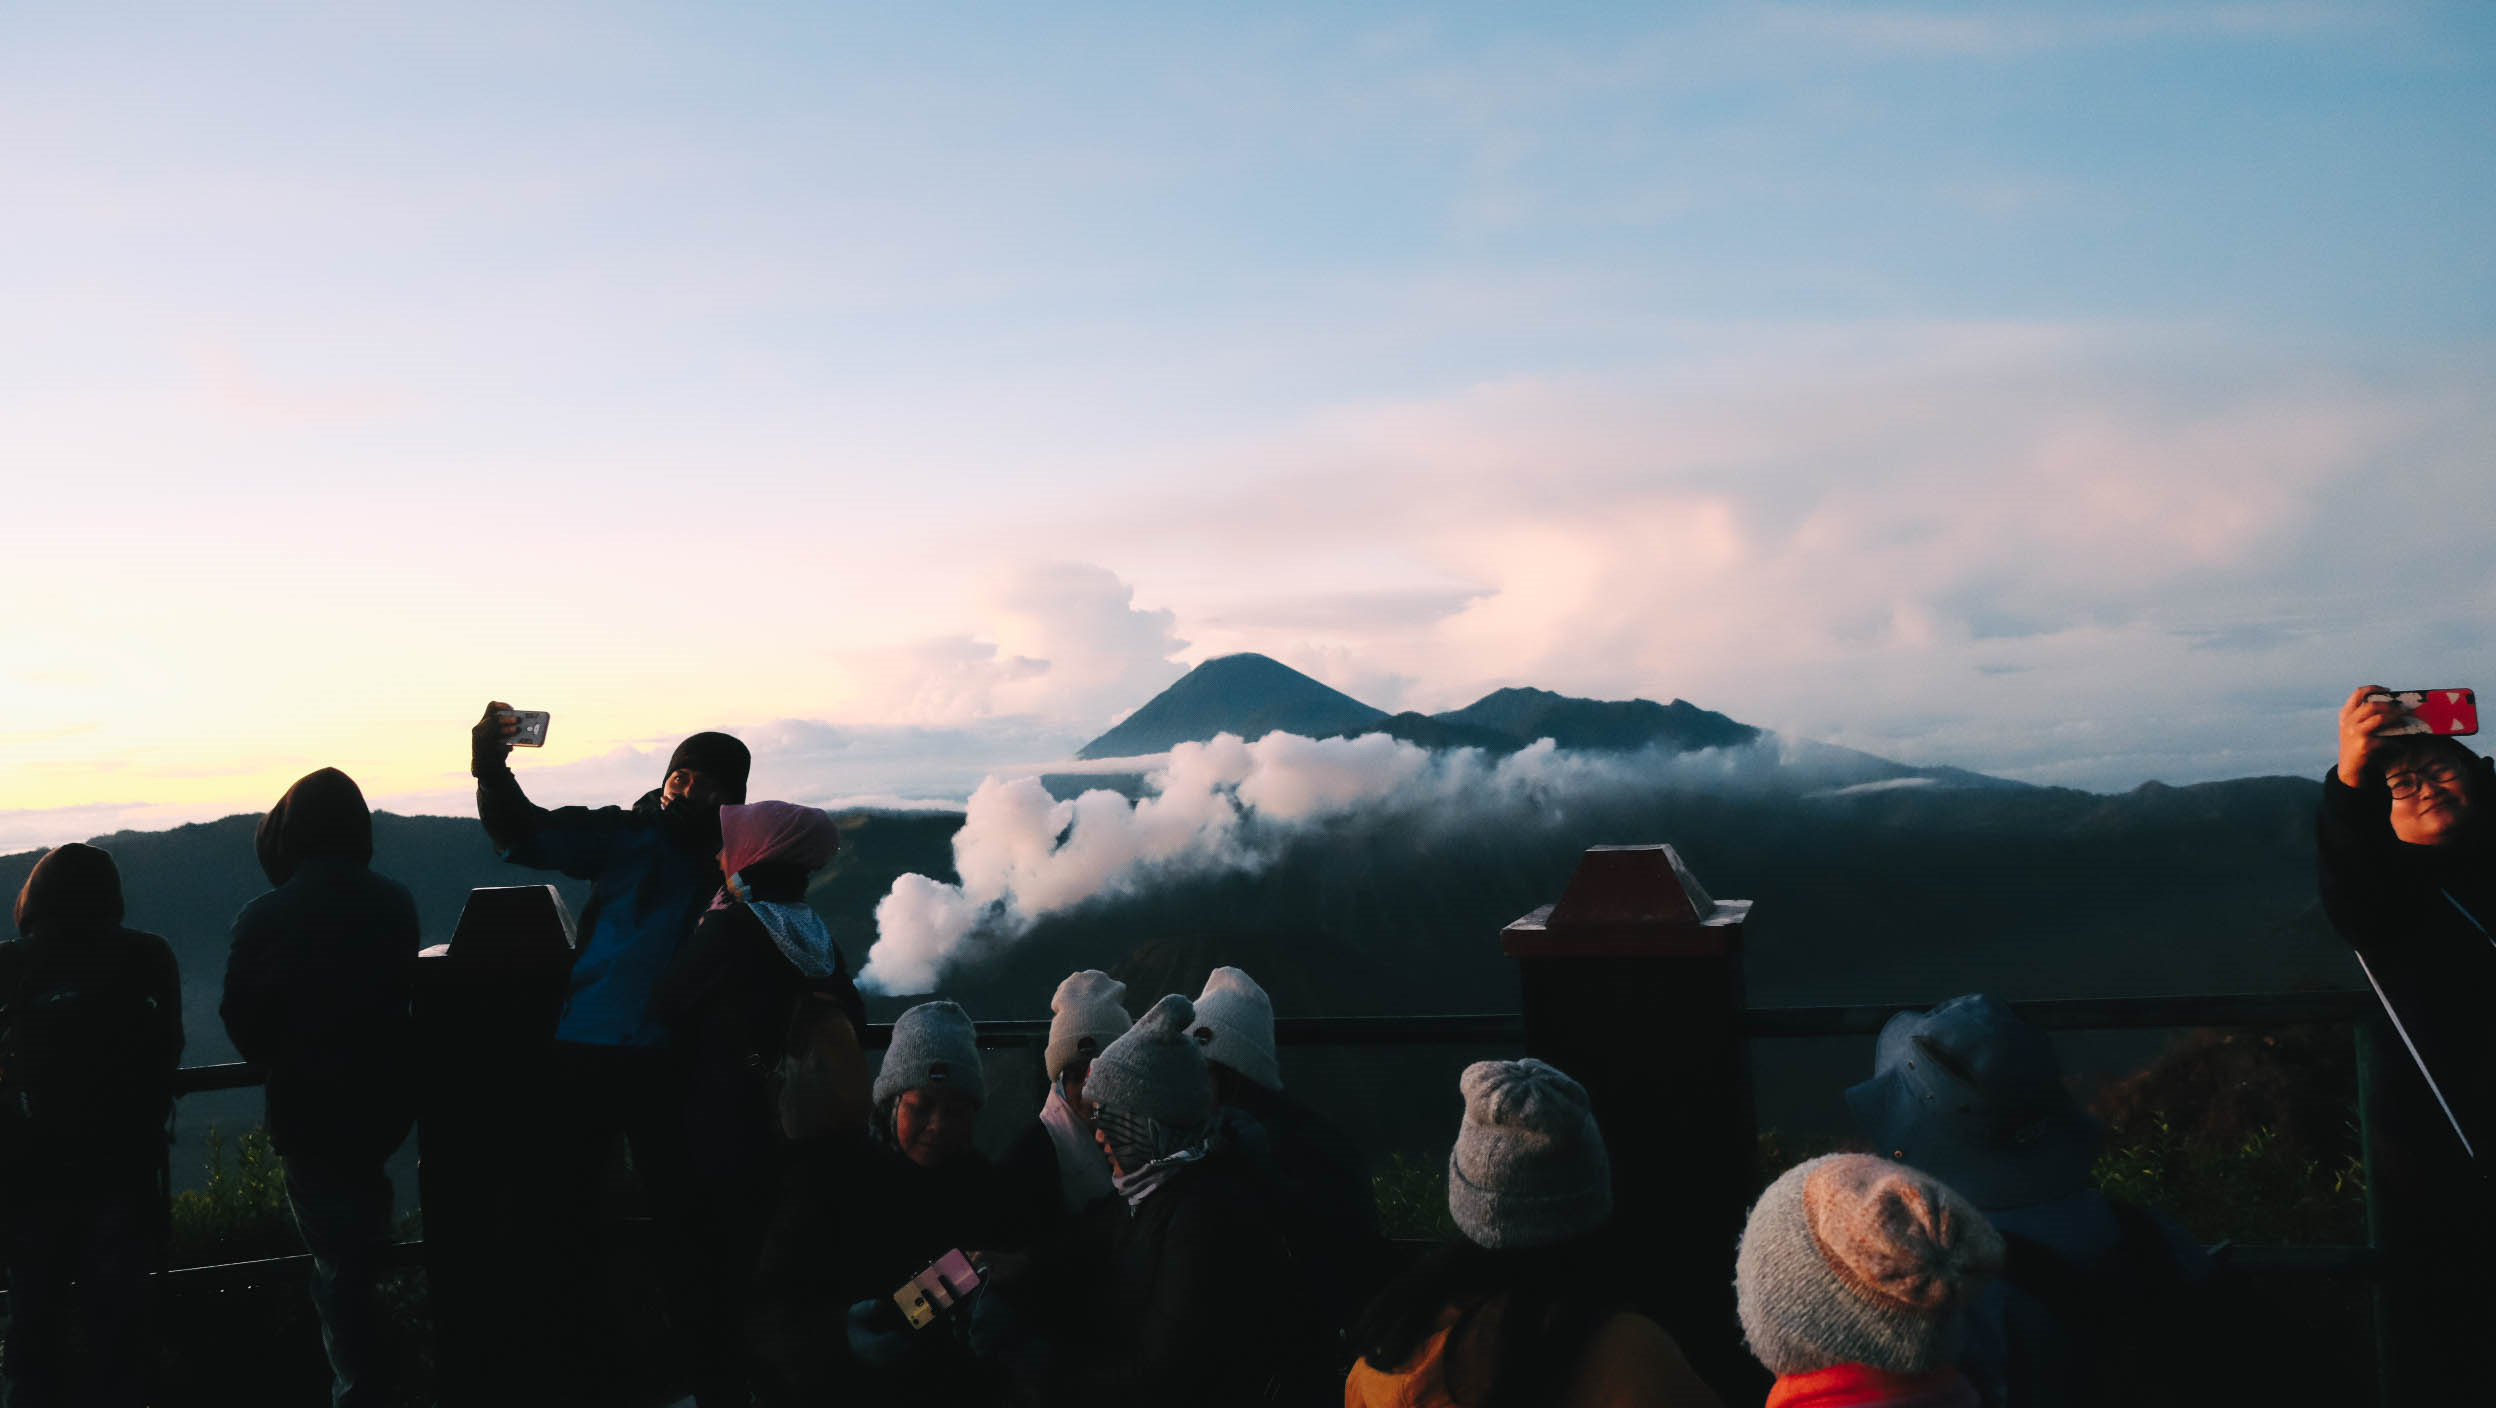 Den Indonesia, cham chan toi mieng nui lua Bromo hinh anh 41